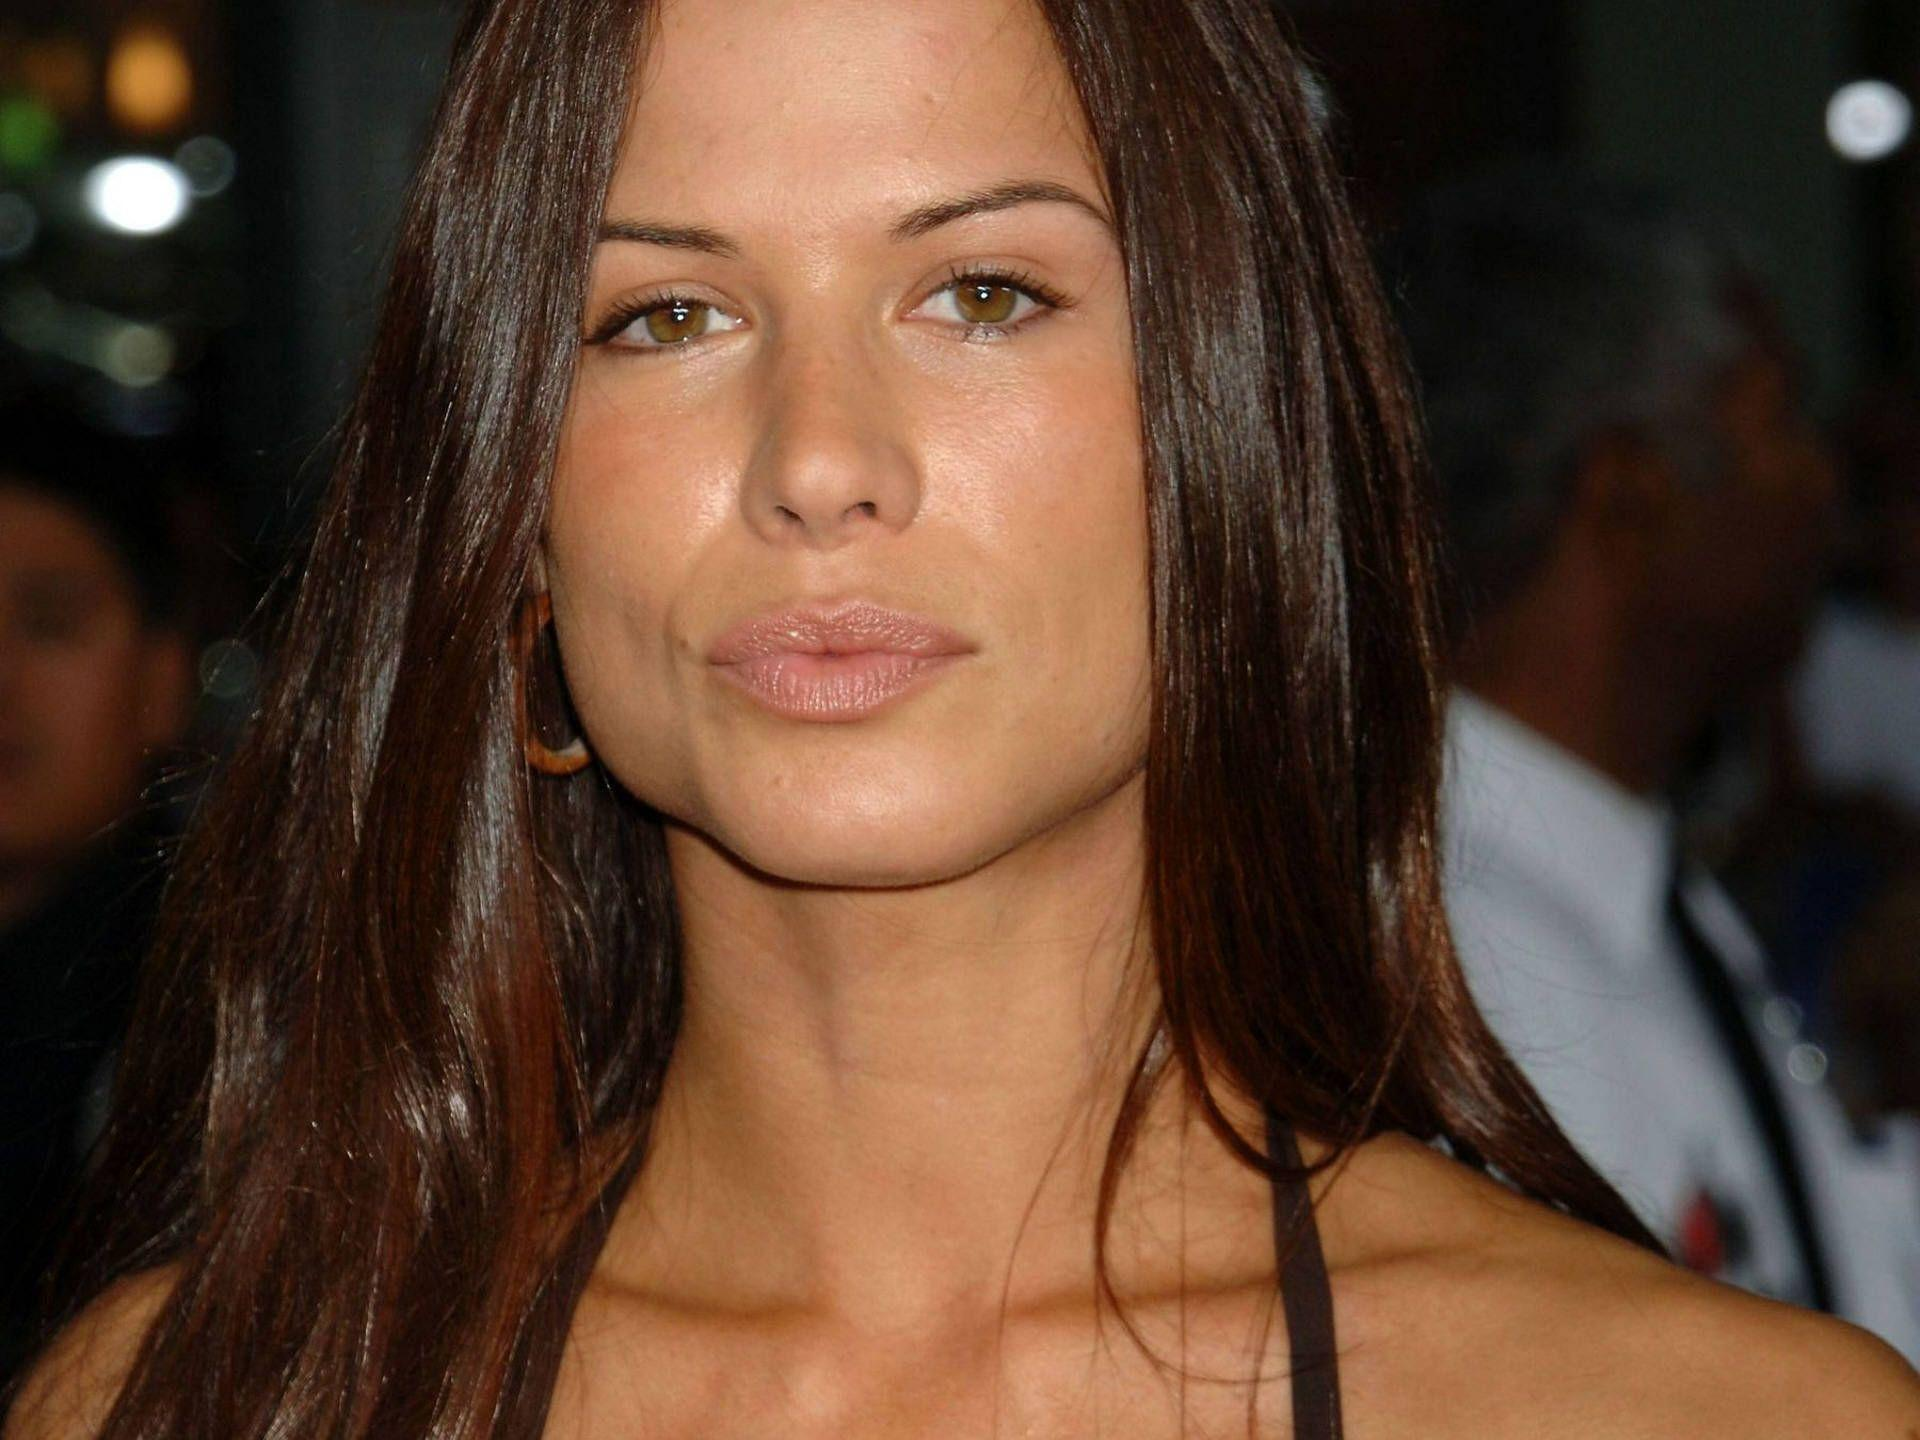 Instagram Rhona Mitra nudes (34 photo), Tits, Fappening, Twitter, braless 2006